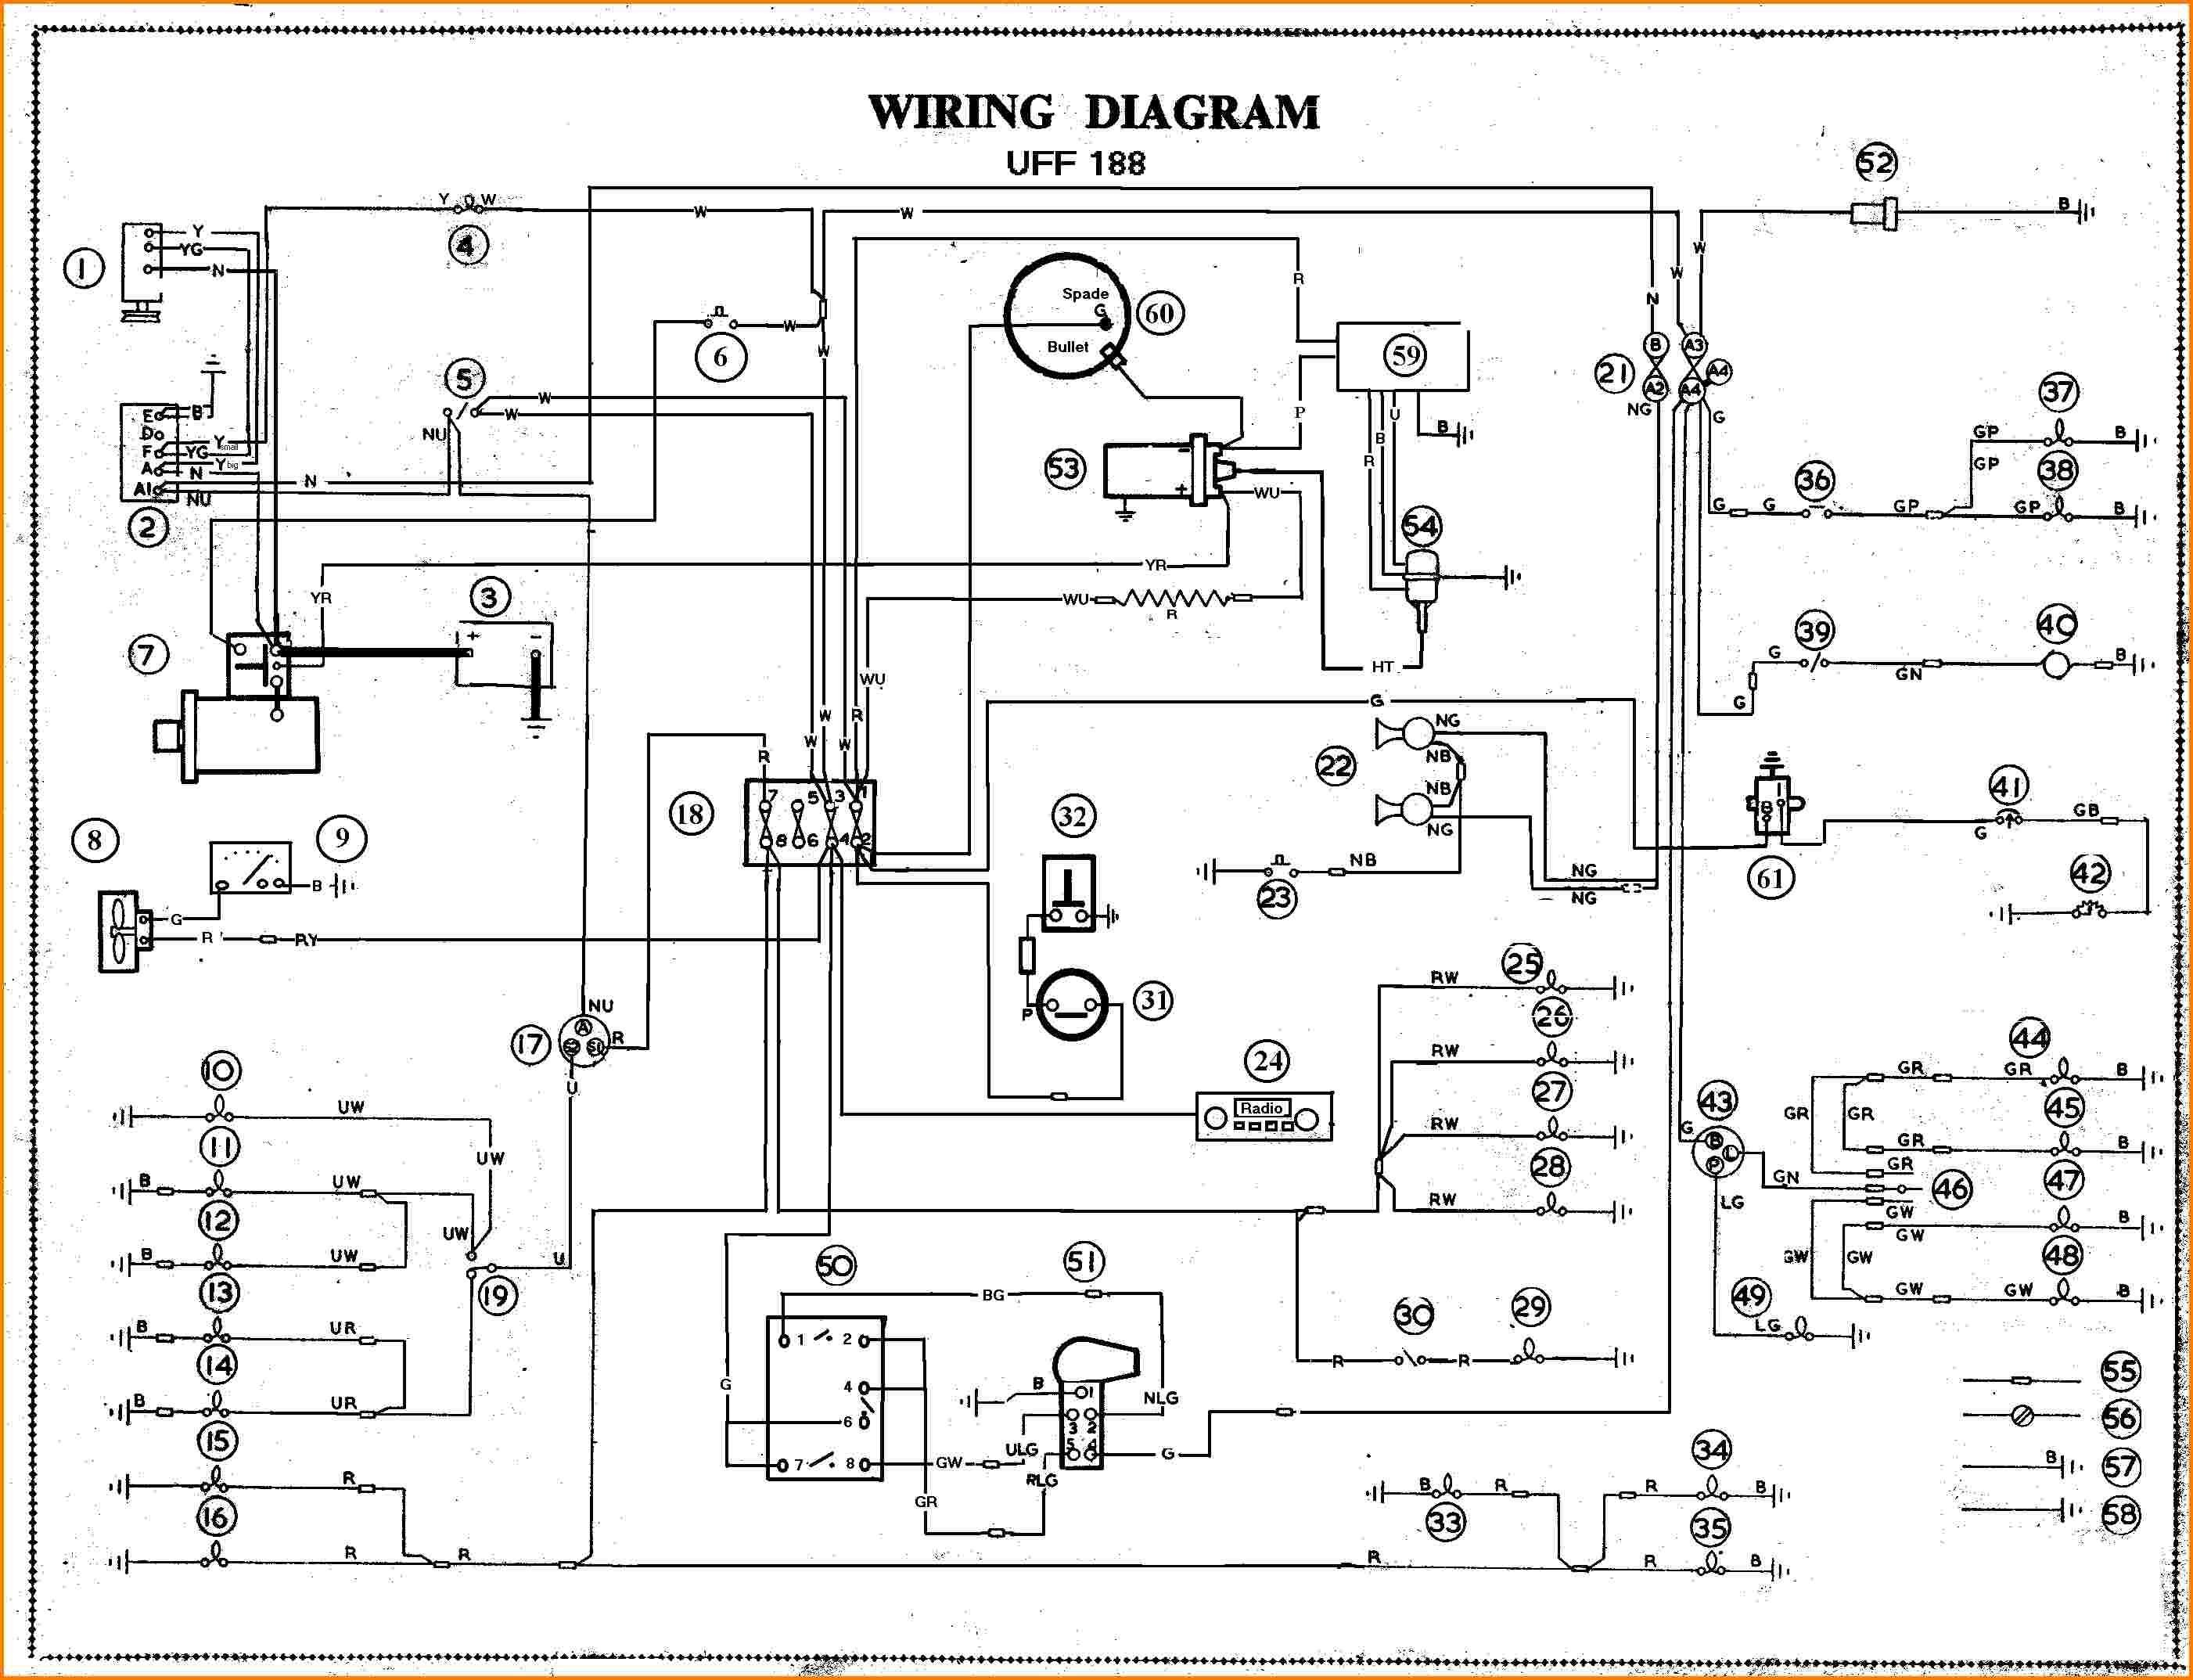 vehicle ecu diagram free download wiring diagram schematic wire rh linxglobal co Free Electrical Wiring Diagrams De306 Free Automotive Wiring Diagrams